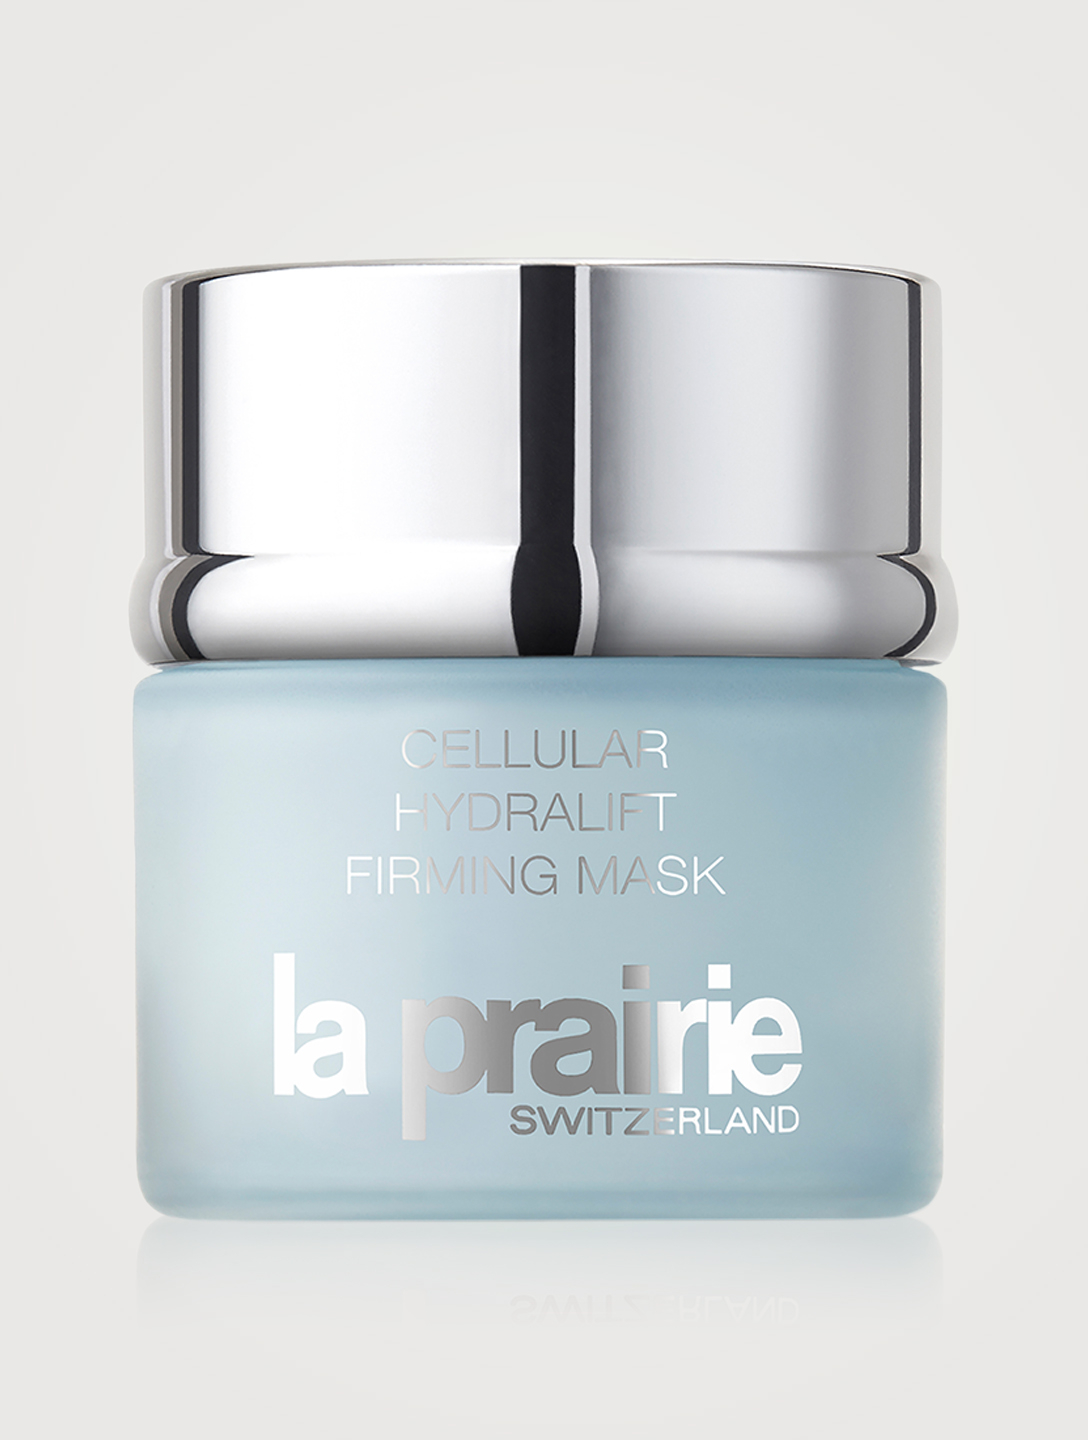 LA PRAIRIE Cellular Hydralift Firming Mask Beauty